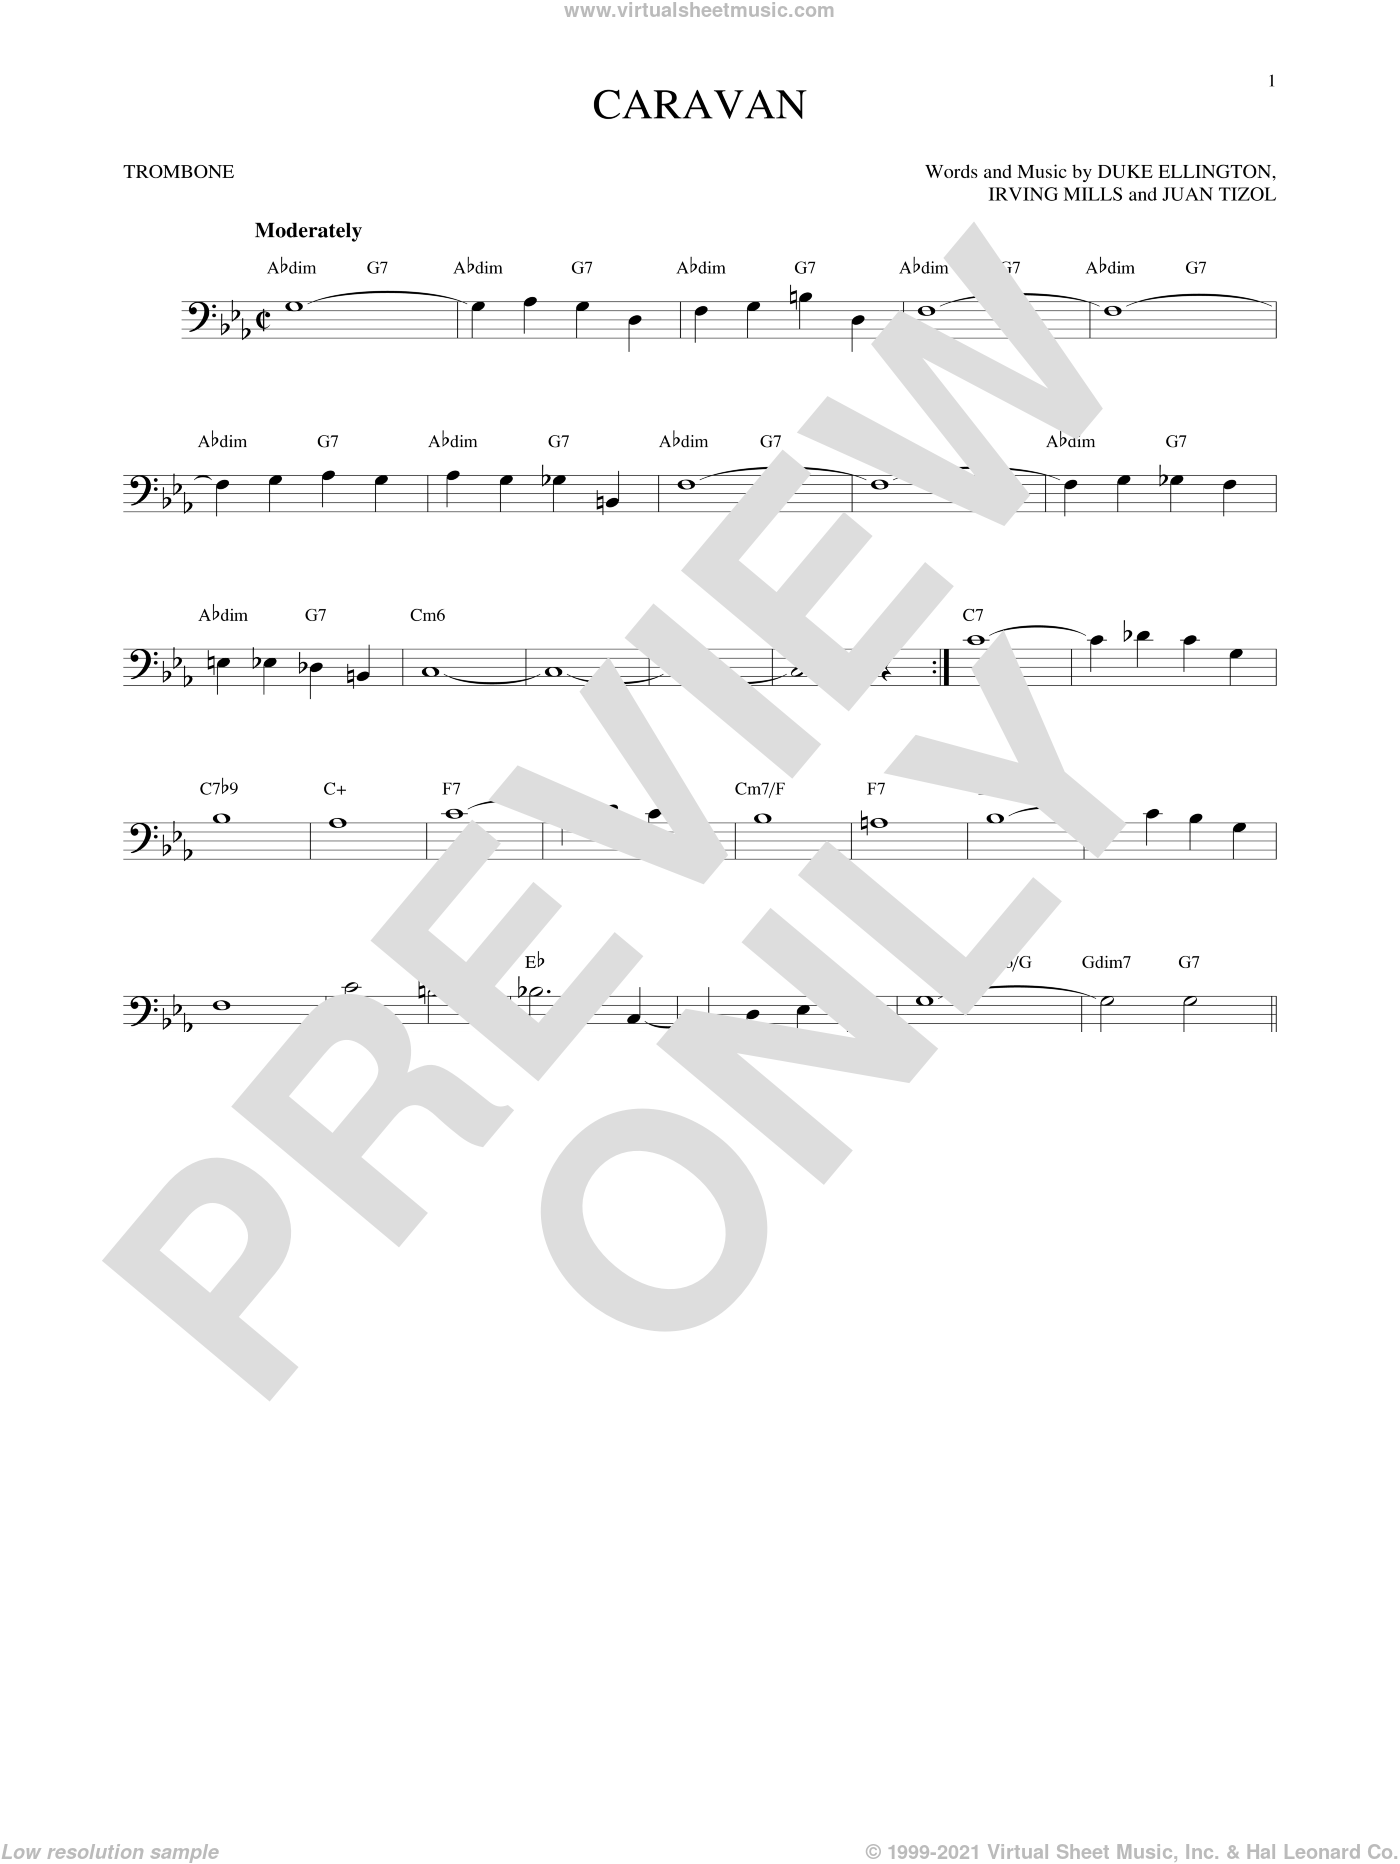 Caravan sheet music for trombone solo by Juan Tizol